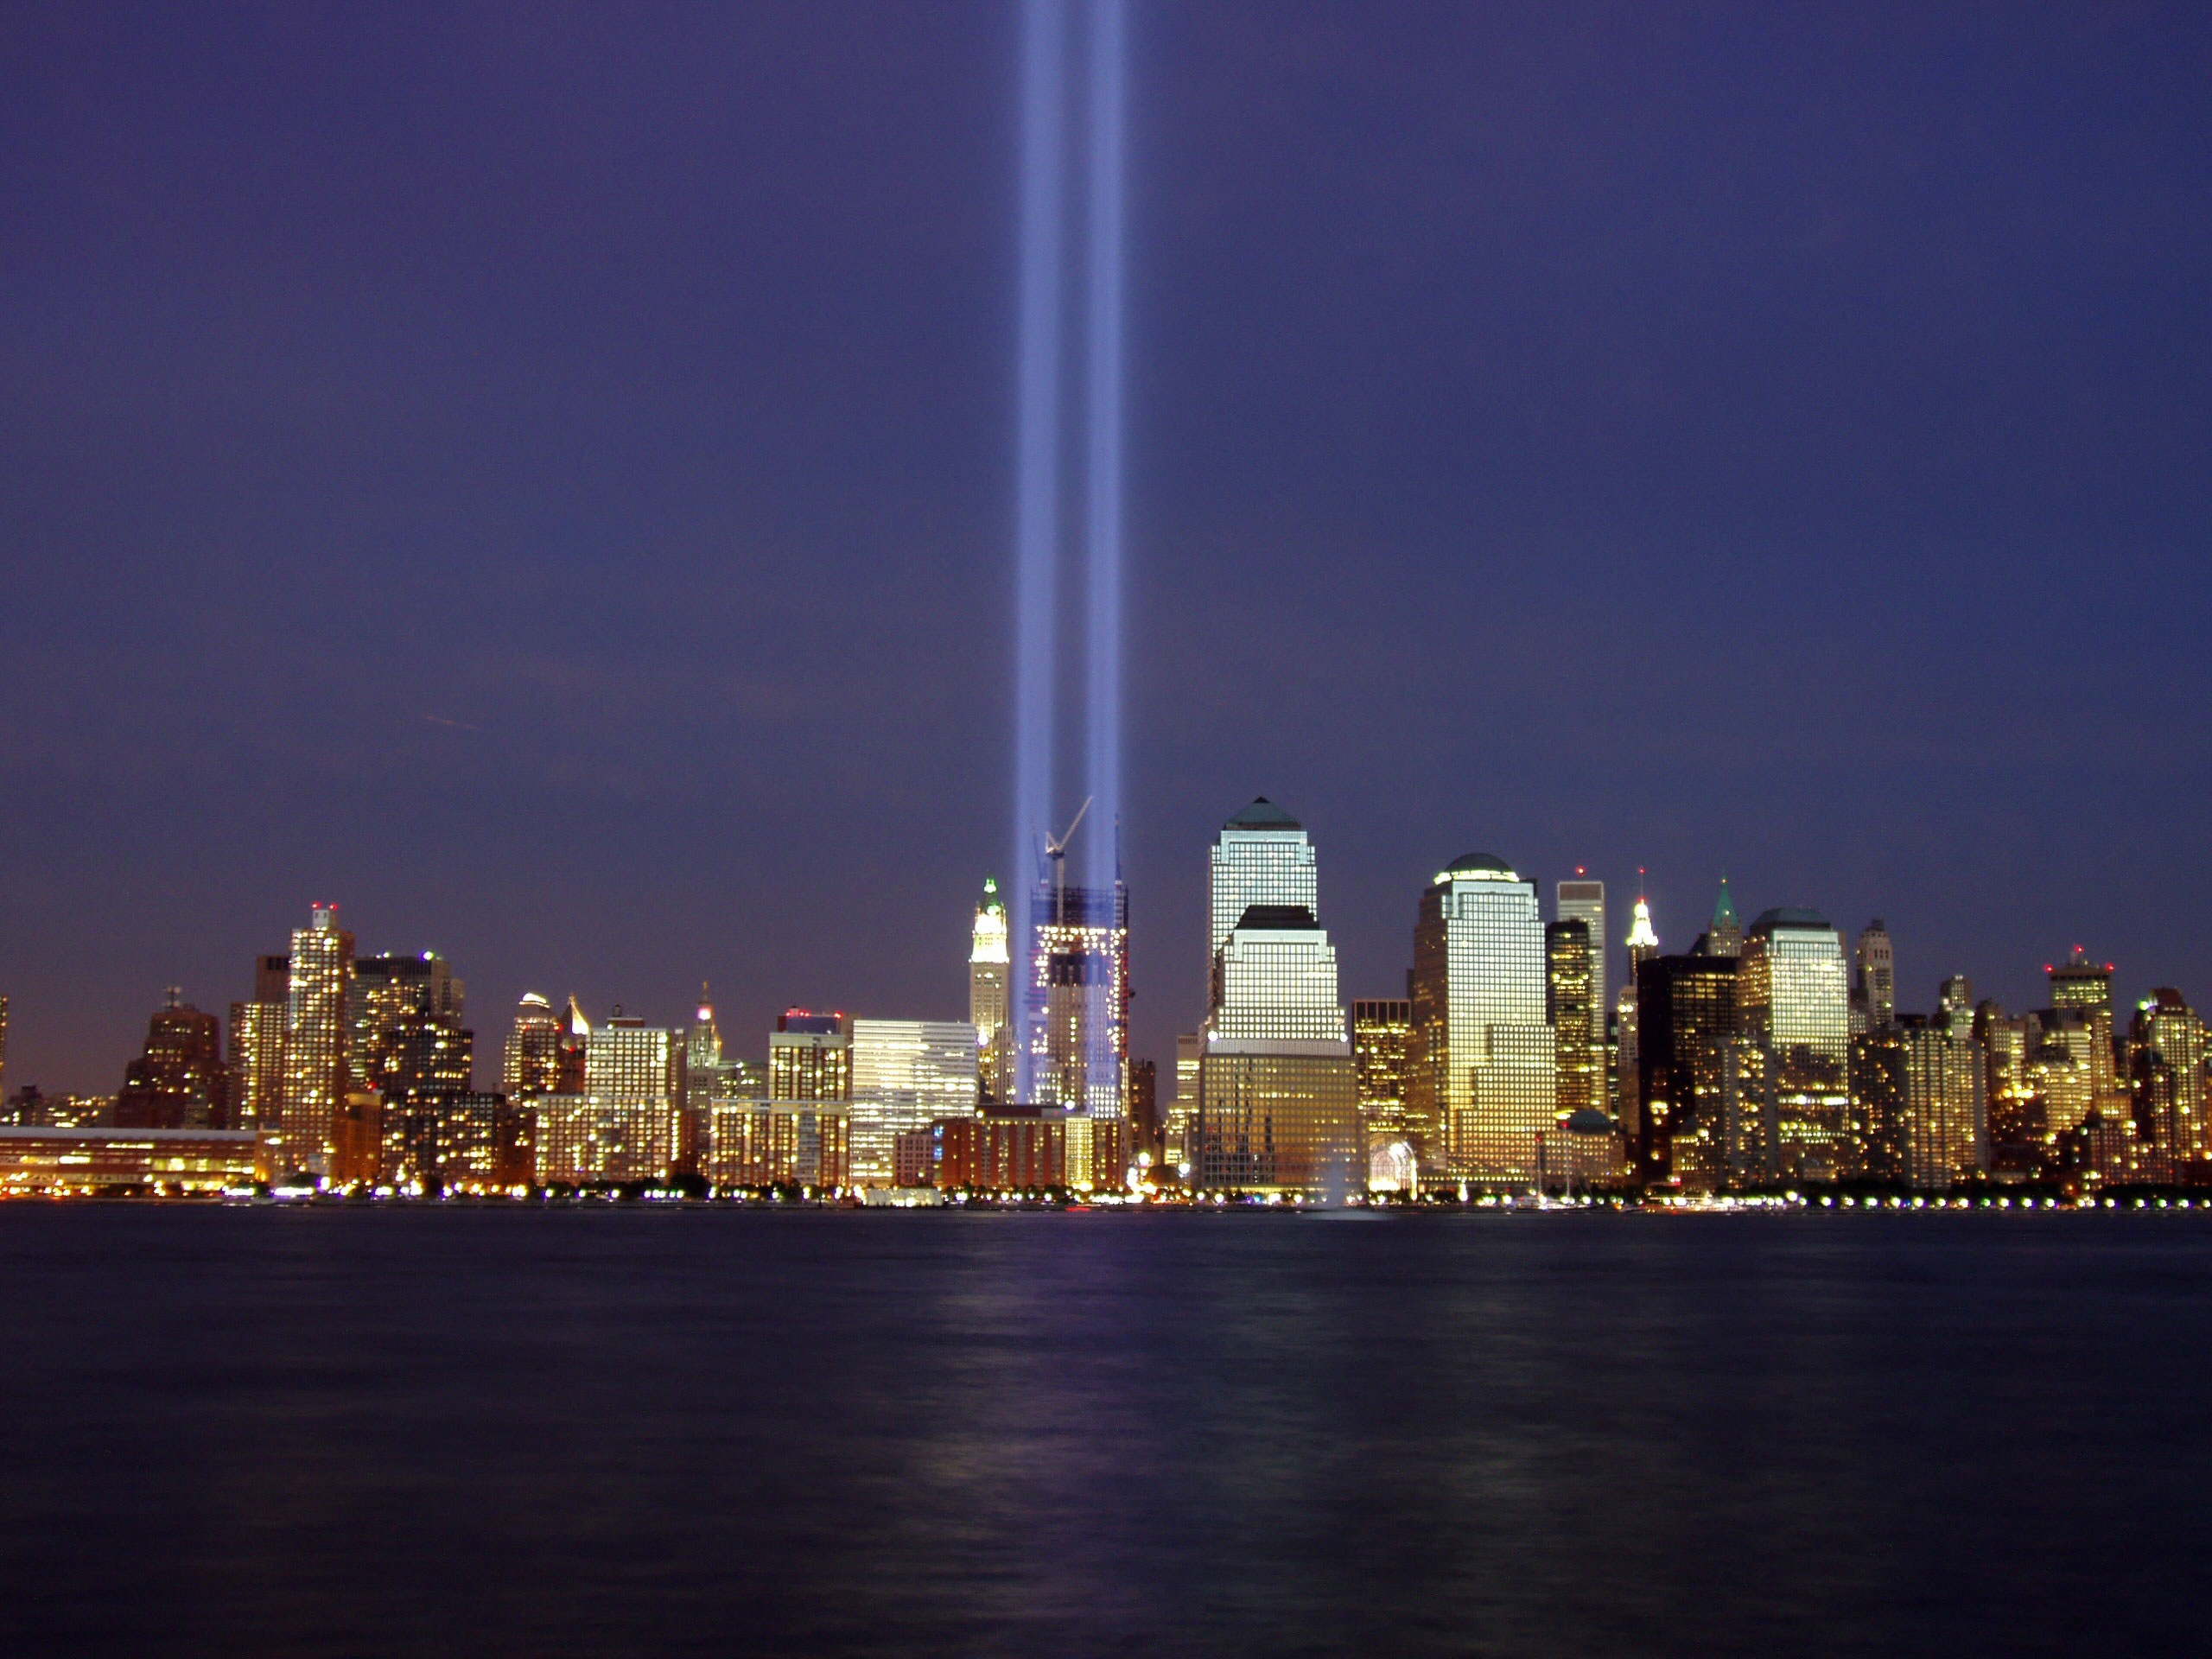 2004 Tribute in Light memorial. (Wikimedia)